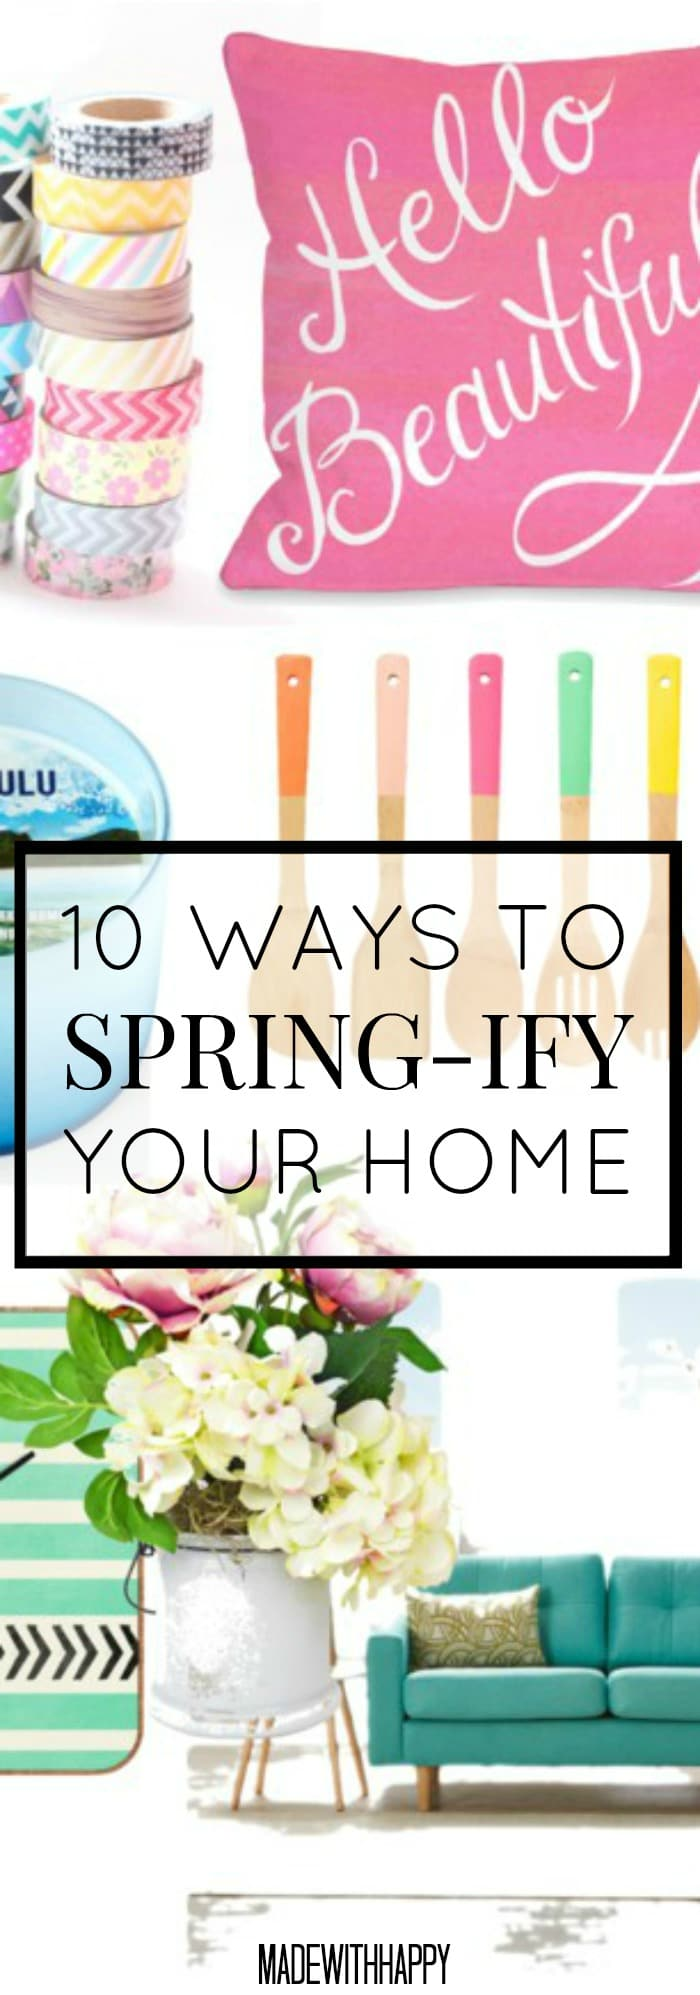 10 Ways to Update your Home for Spring | Spring-ify your home | Spring Updates | www.madewithHAPPY.com